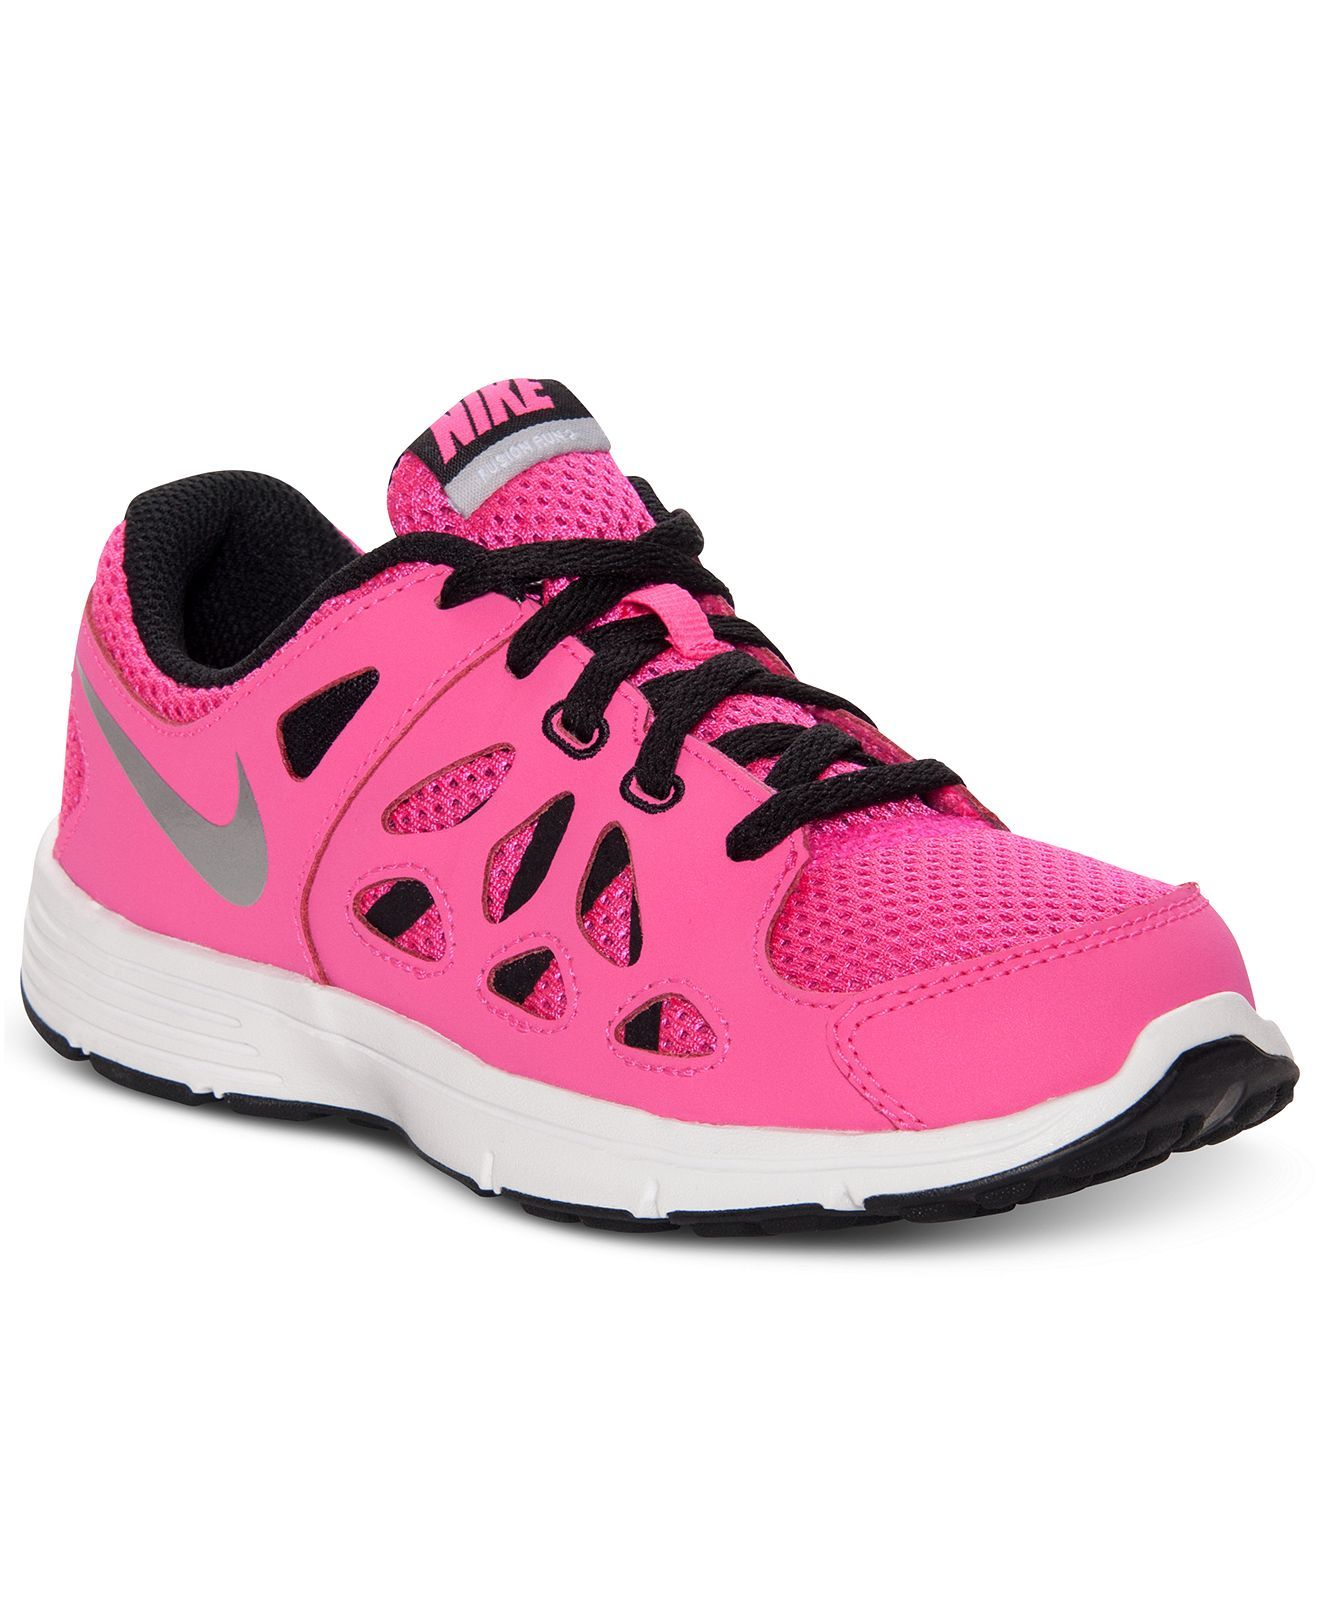 new arrival 2cbac a846a Nike Kids Shoes, Girls Dual Fusion Run 2 Running Sneakers - Kids Finish  Line Athletic Shoes - Macy s